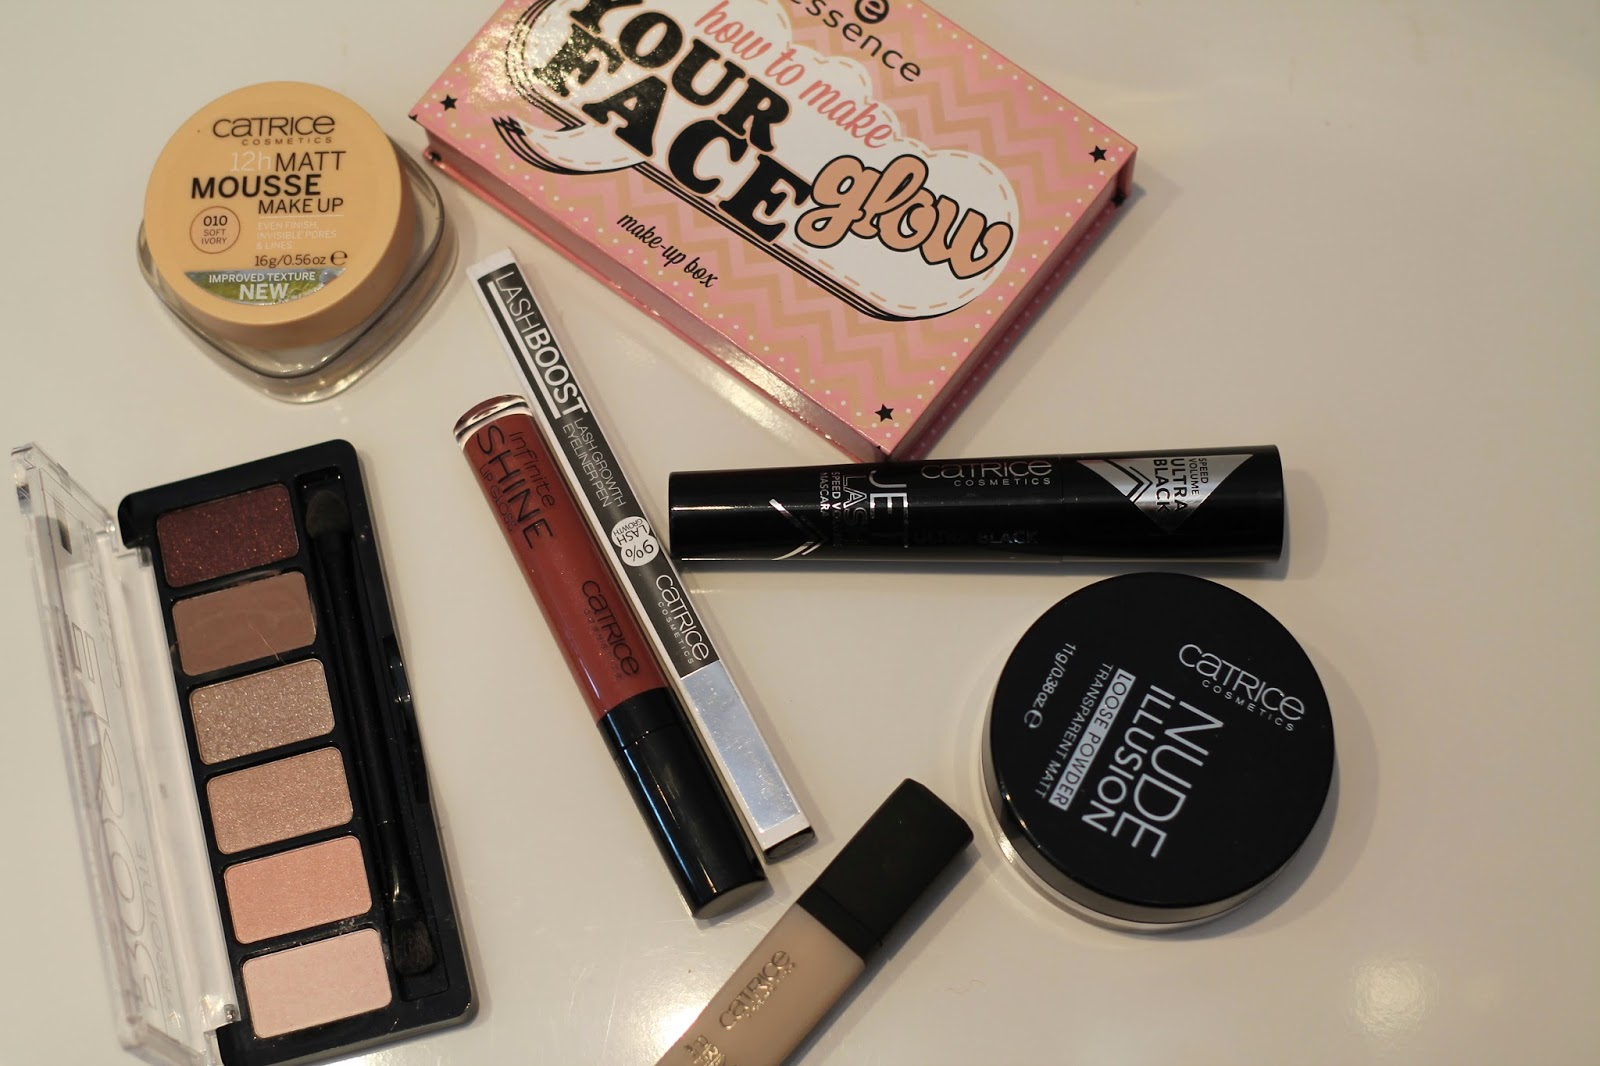 essence how to make your face glow // Catrice Rose Palette // Matt Mousse Make Up // Lash Boost Eyeliner // Infinite Shine // Jet Lash Macara // Lidschatten Bace // Nude Illuison Loose Powder /